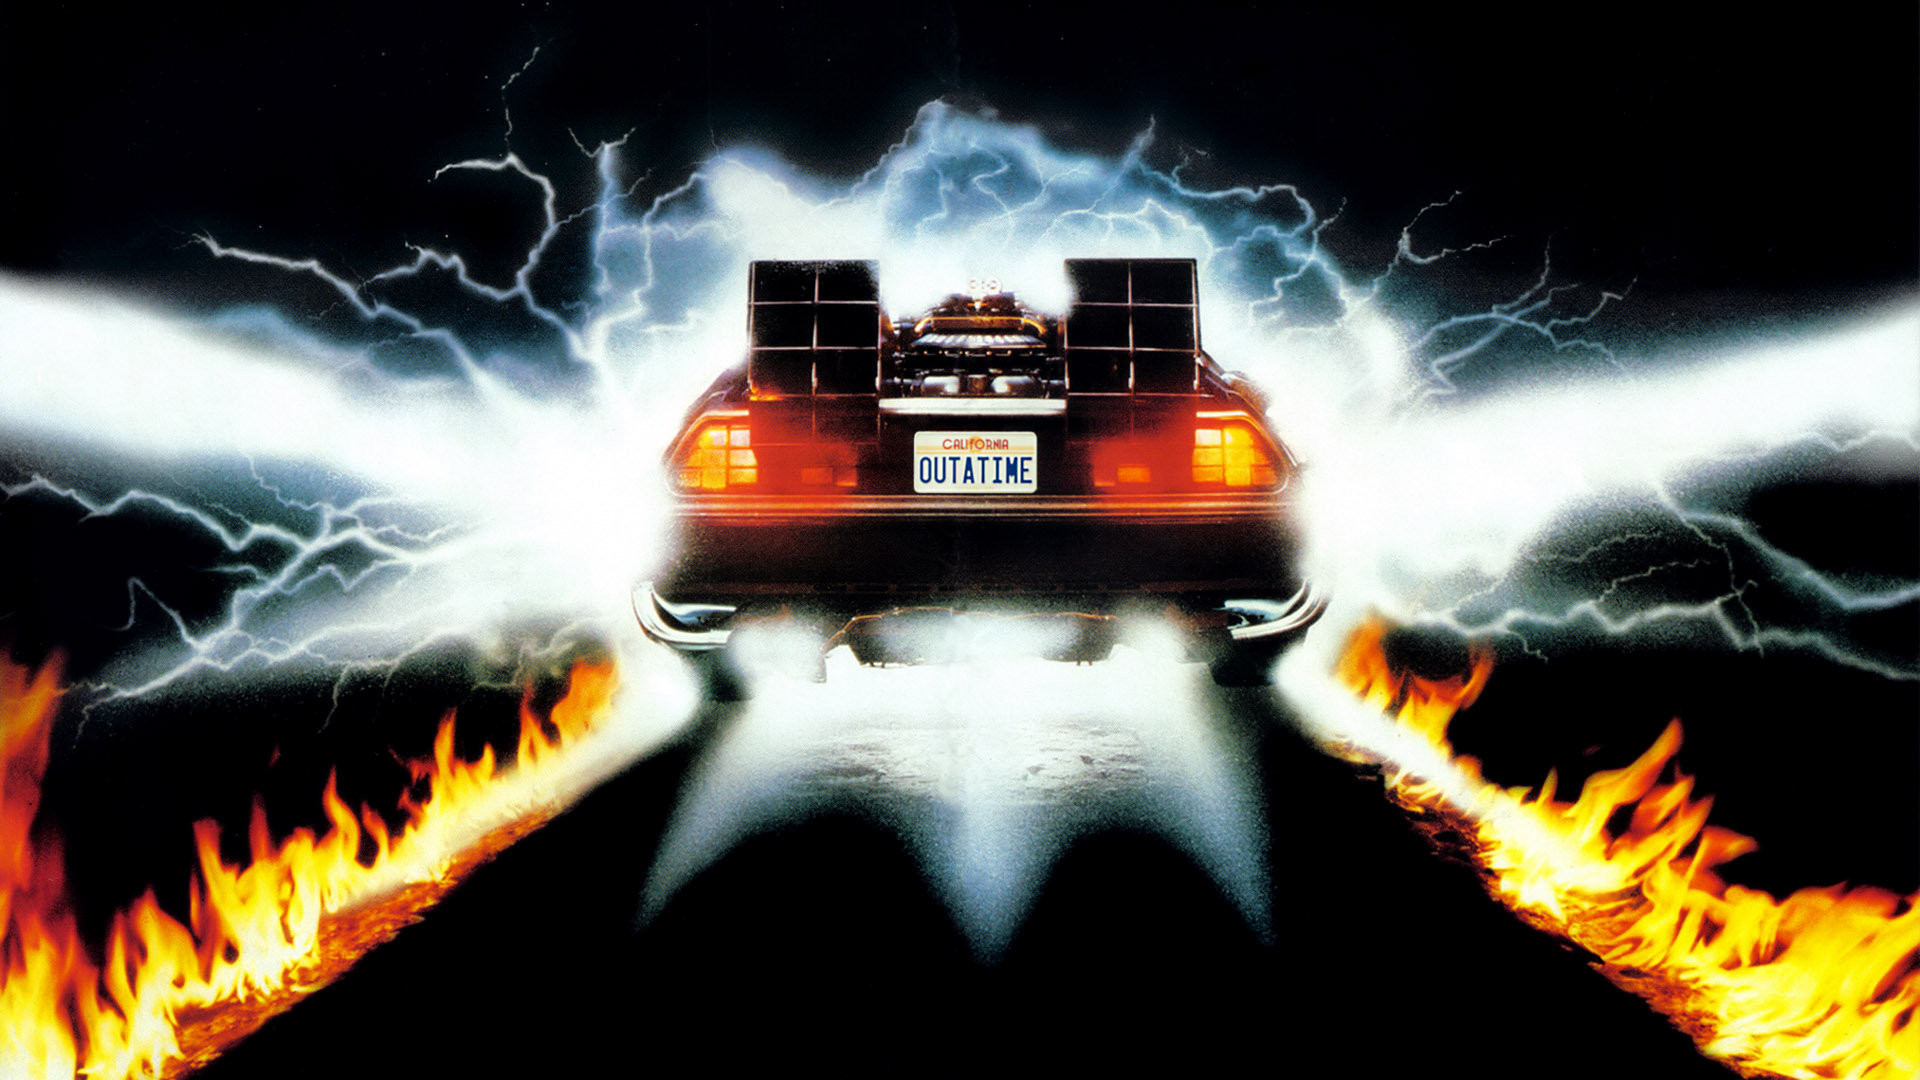 Doc-Brown's-back-with-thoughts-on-time-travel-MovieTVTechGeeks-BTTF-ad-MovieTVTechGeeks-wallpaper-wp3404698